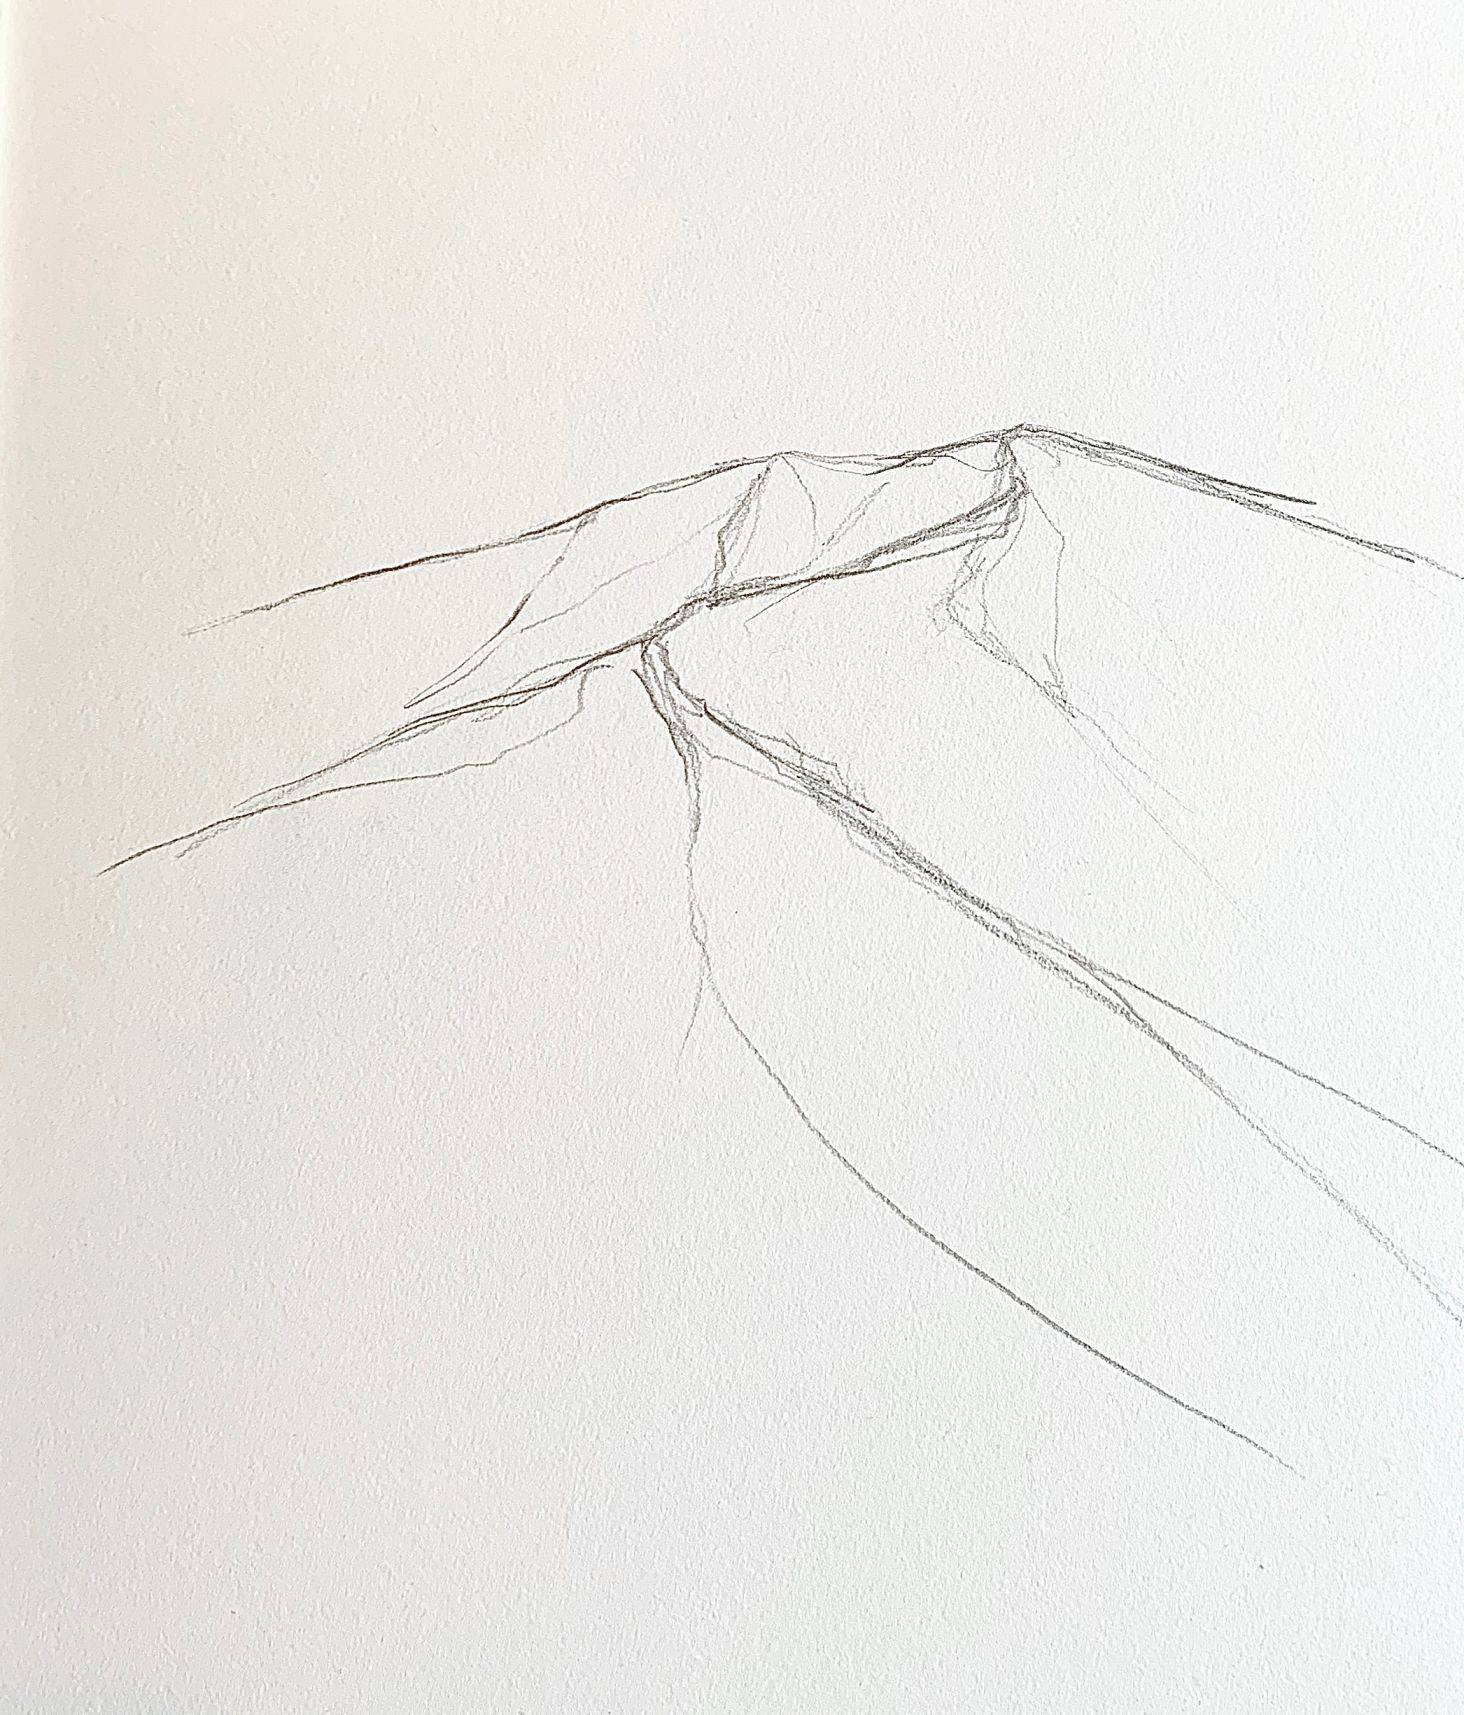 gunung-drawing#4